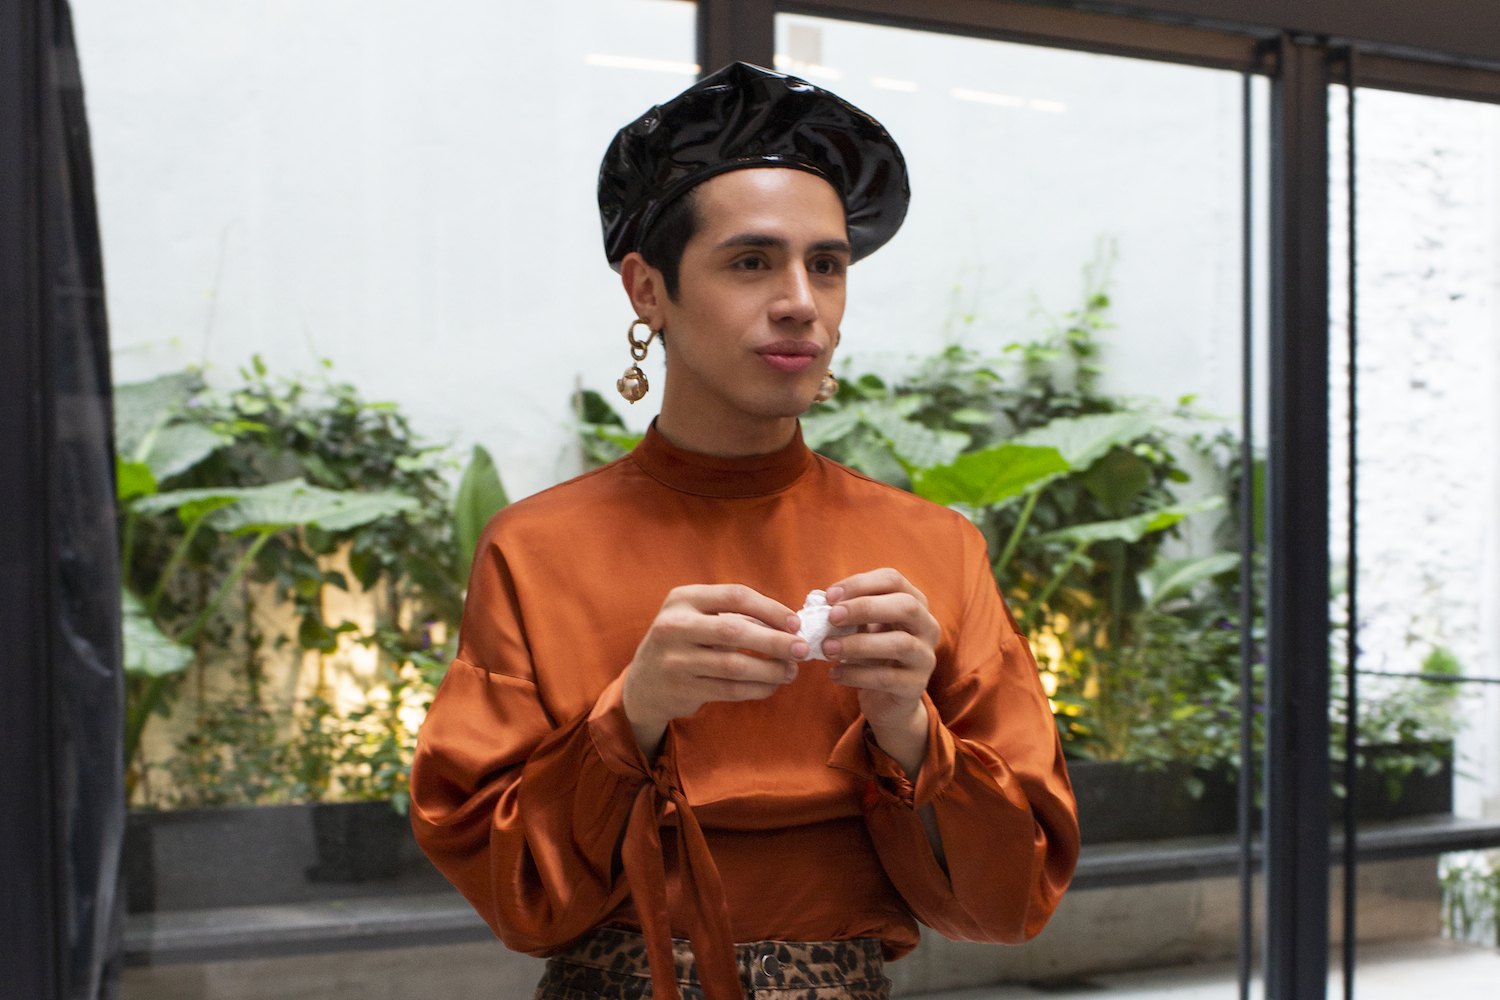 TRAILER: Gender-Nonconforming Fashion Designer Santiago Artemis Is the Perfect Reality TV Star